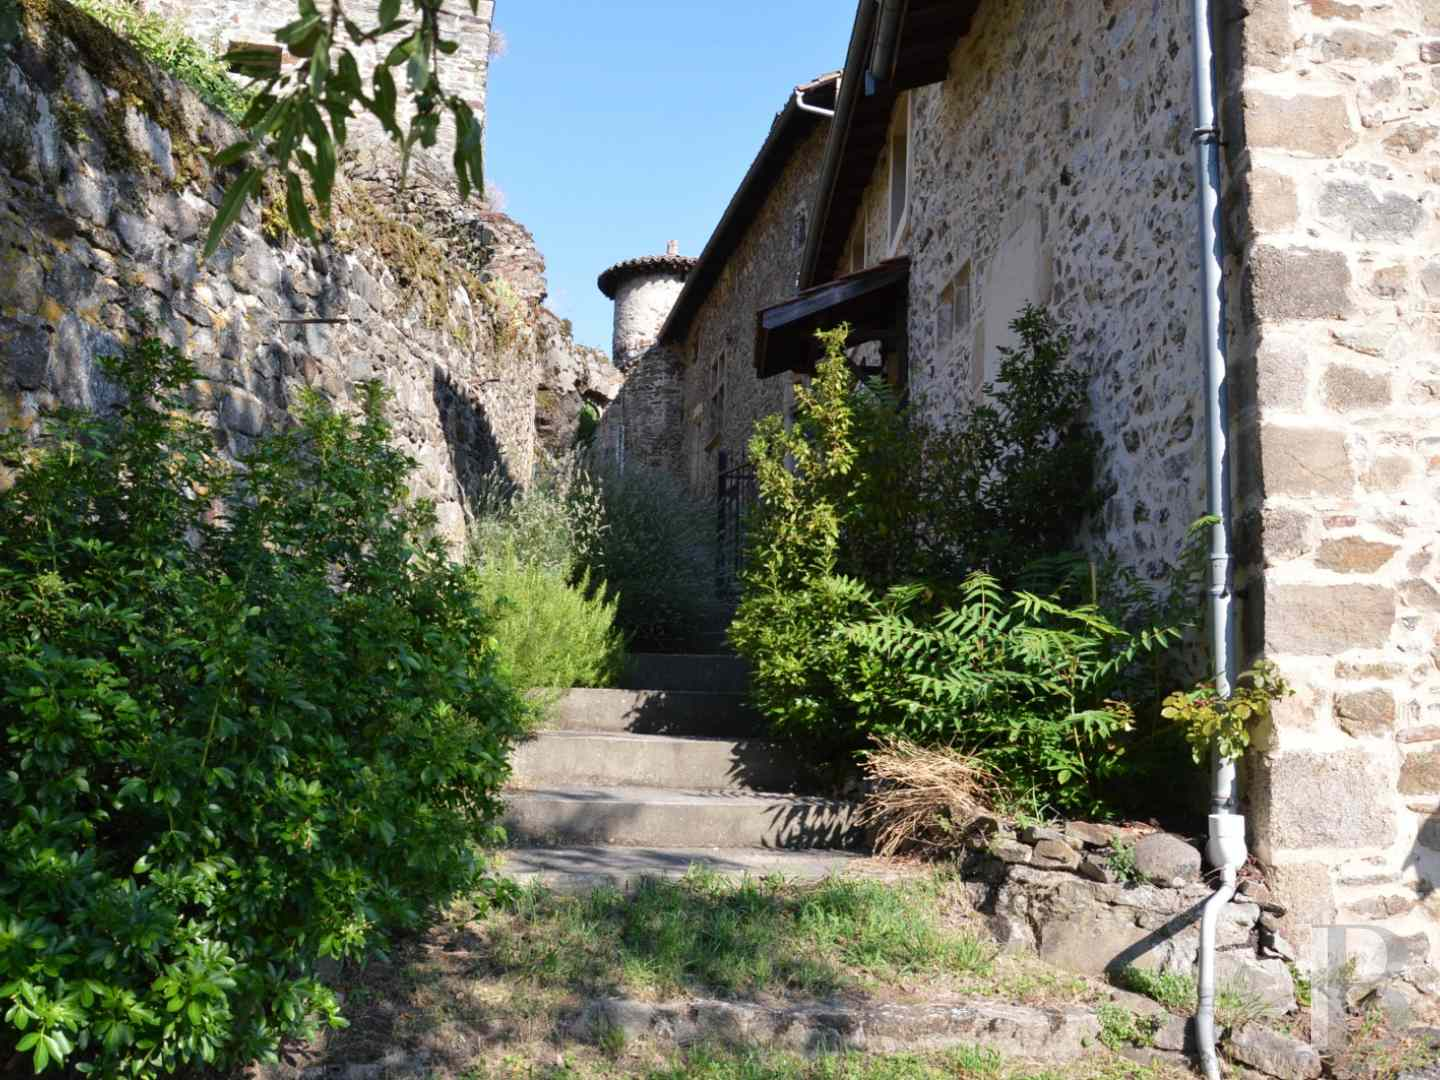 chateaux for sale France rhones alps castles chateaux - 5 zoom